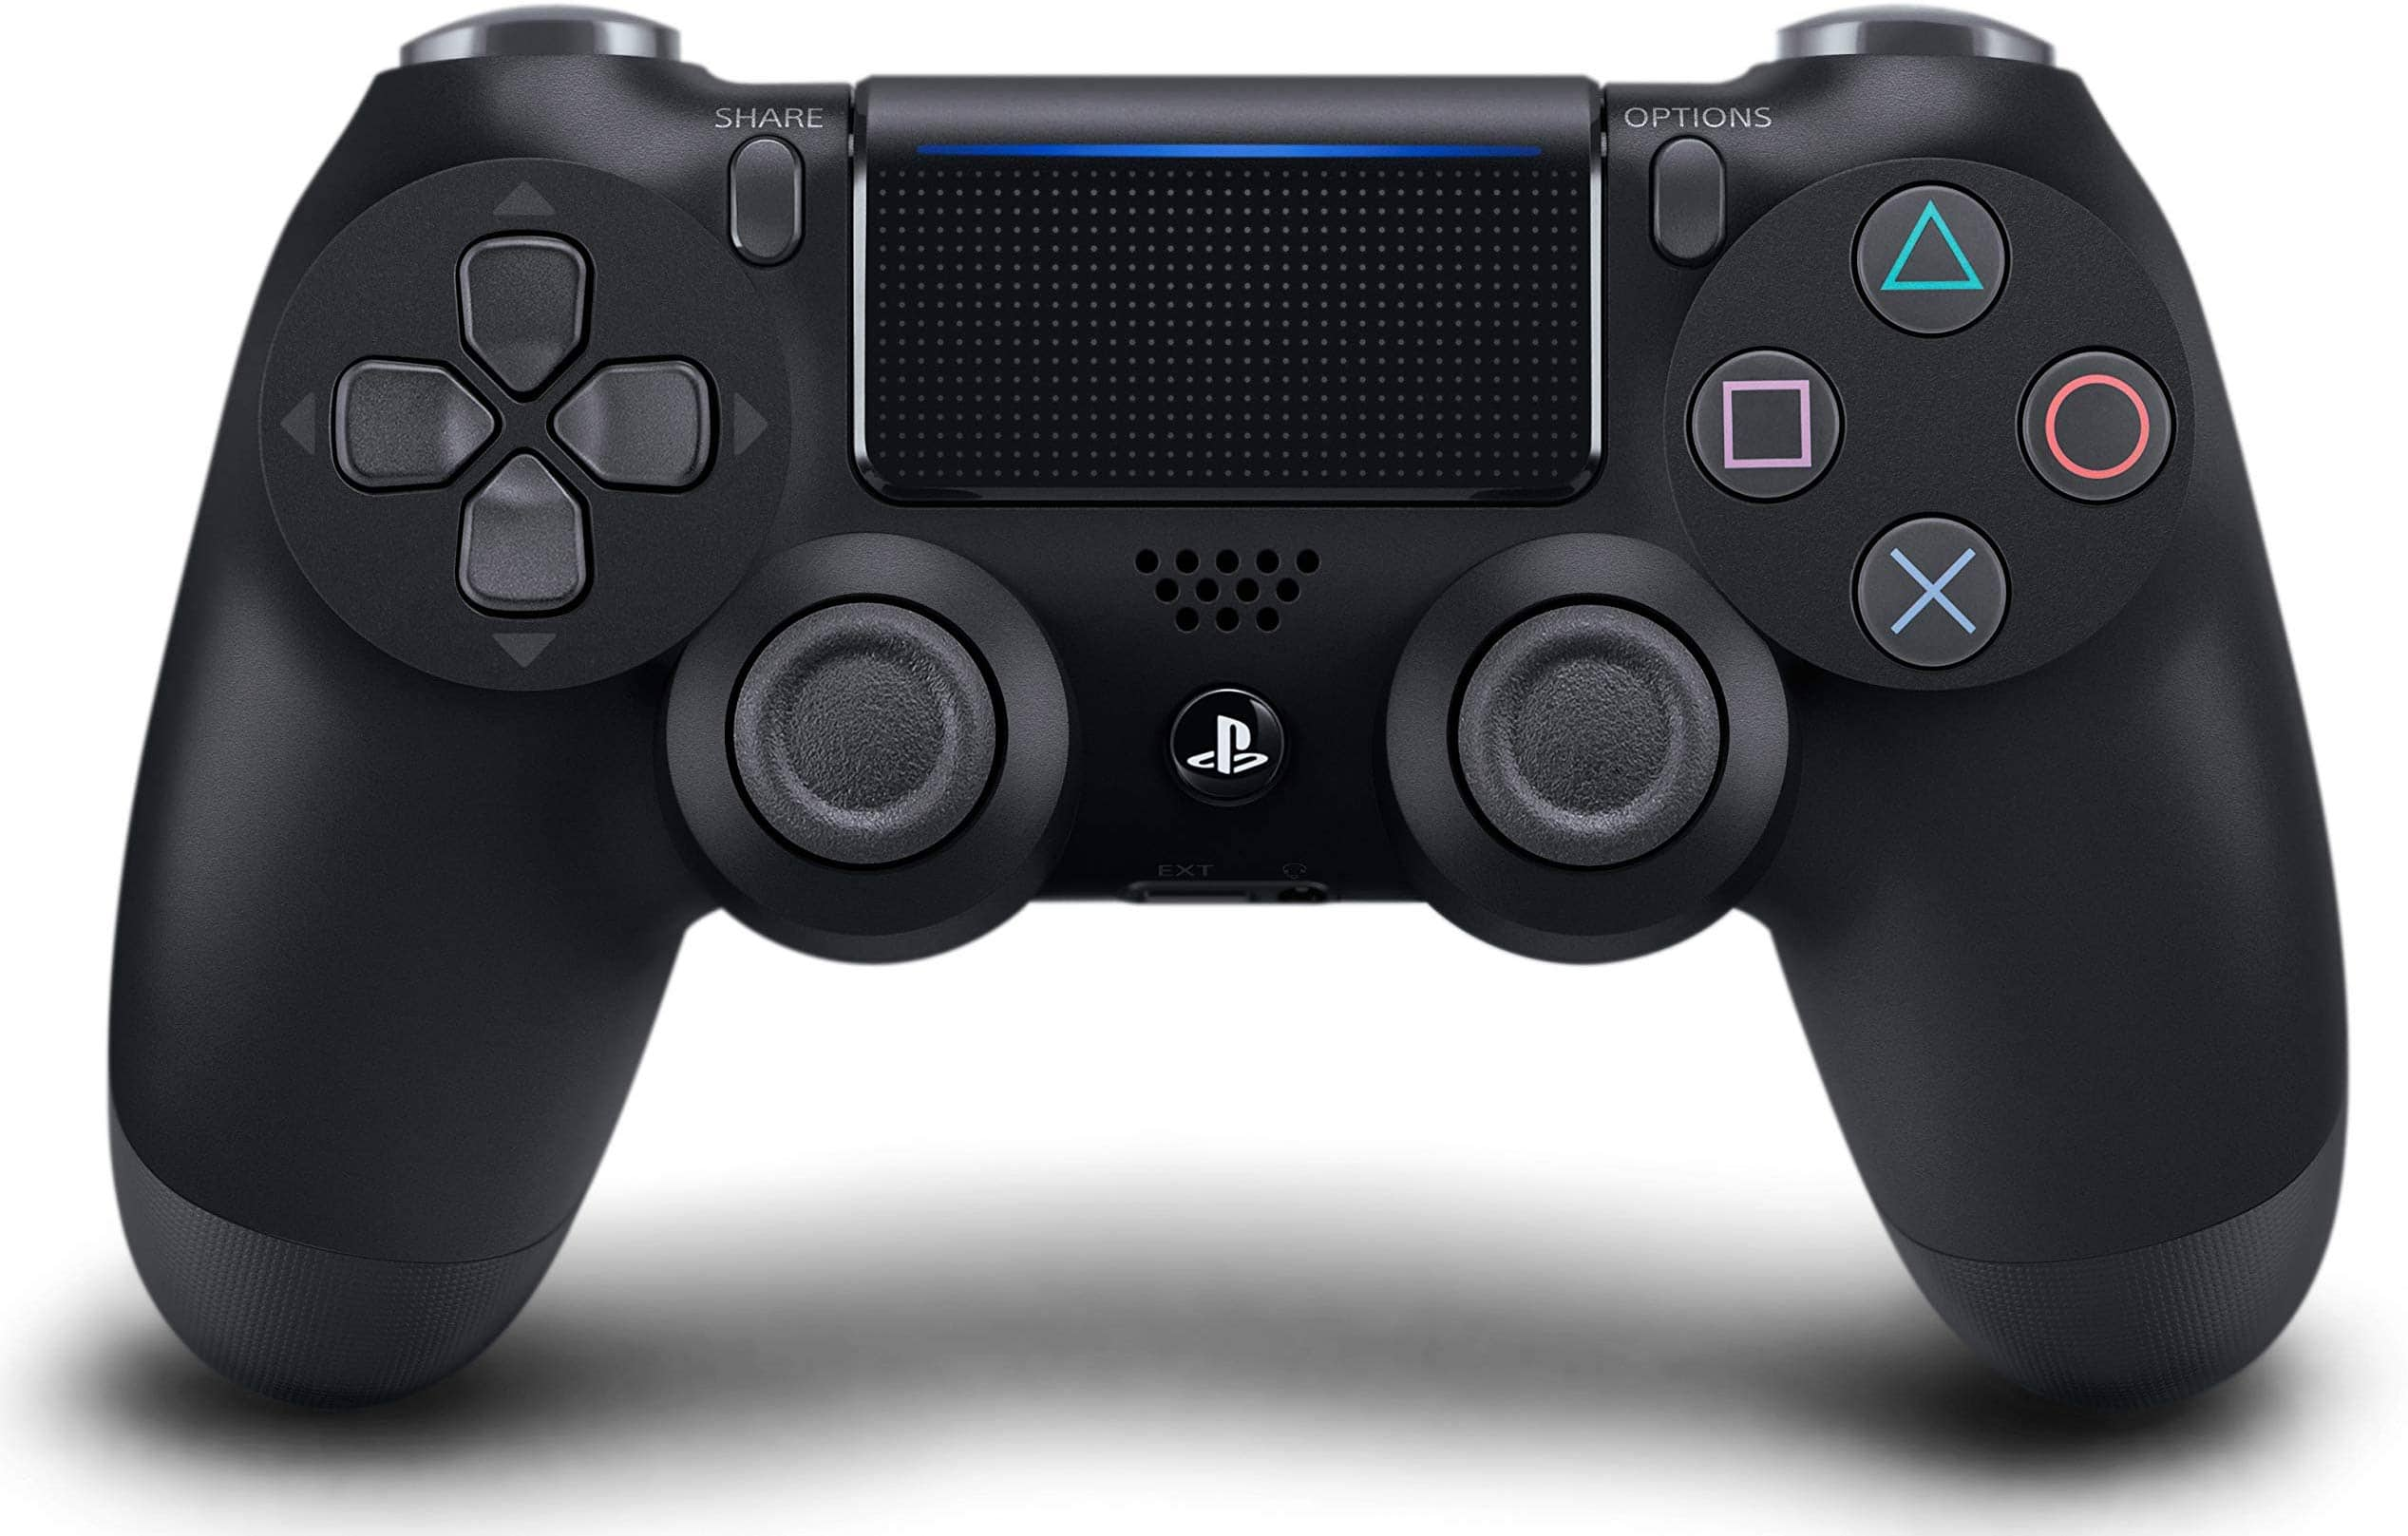 DualShock 4 Wireless Controller for PlayStation 4 $34.99  & More + F/S w/Amazon Prime